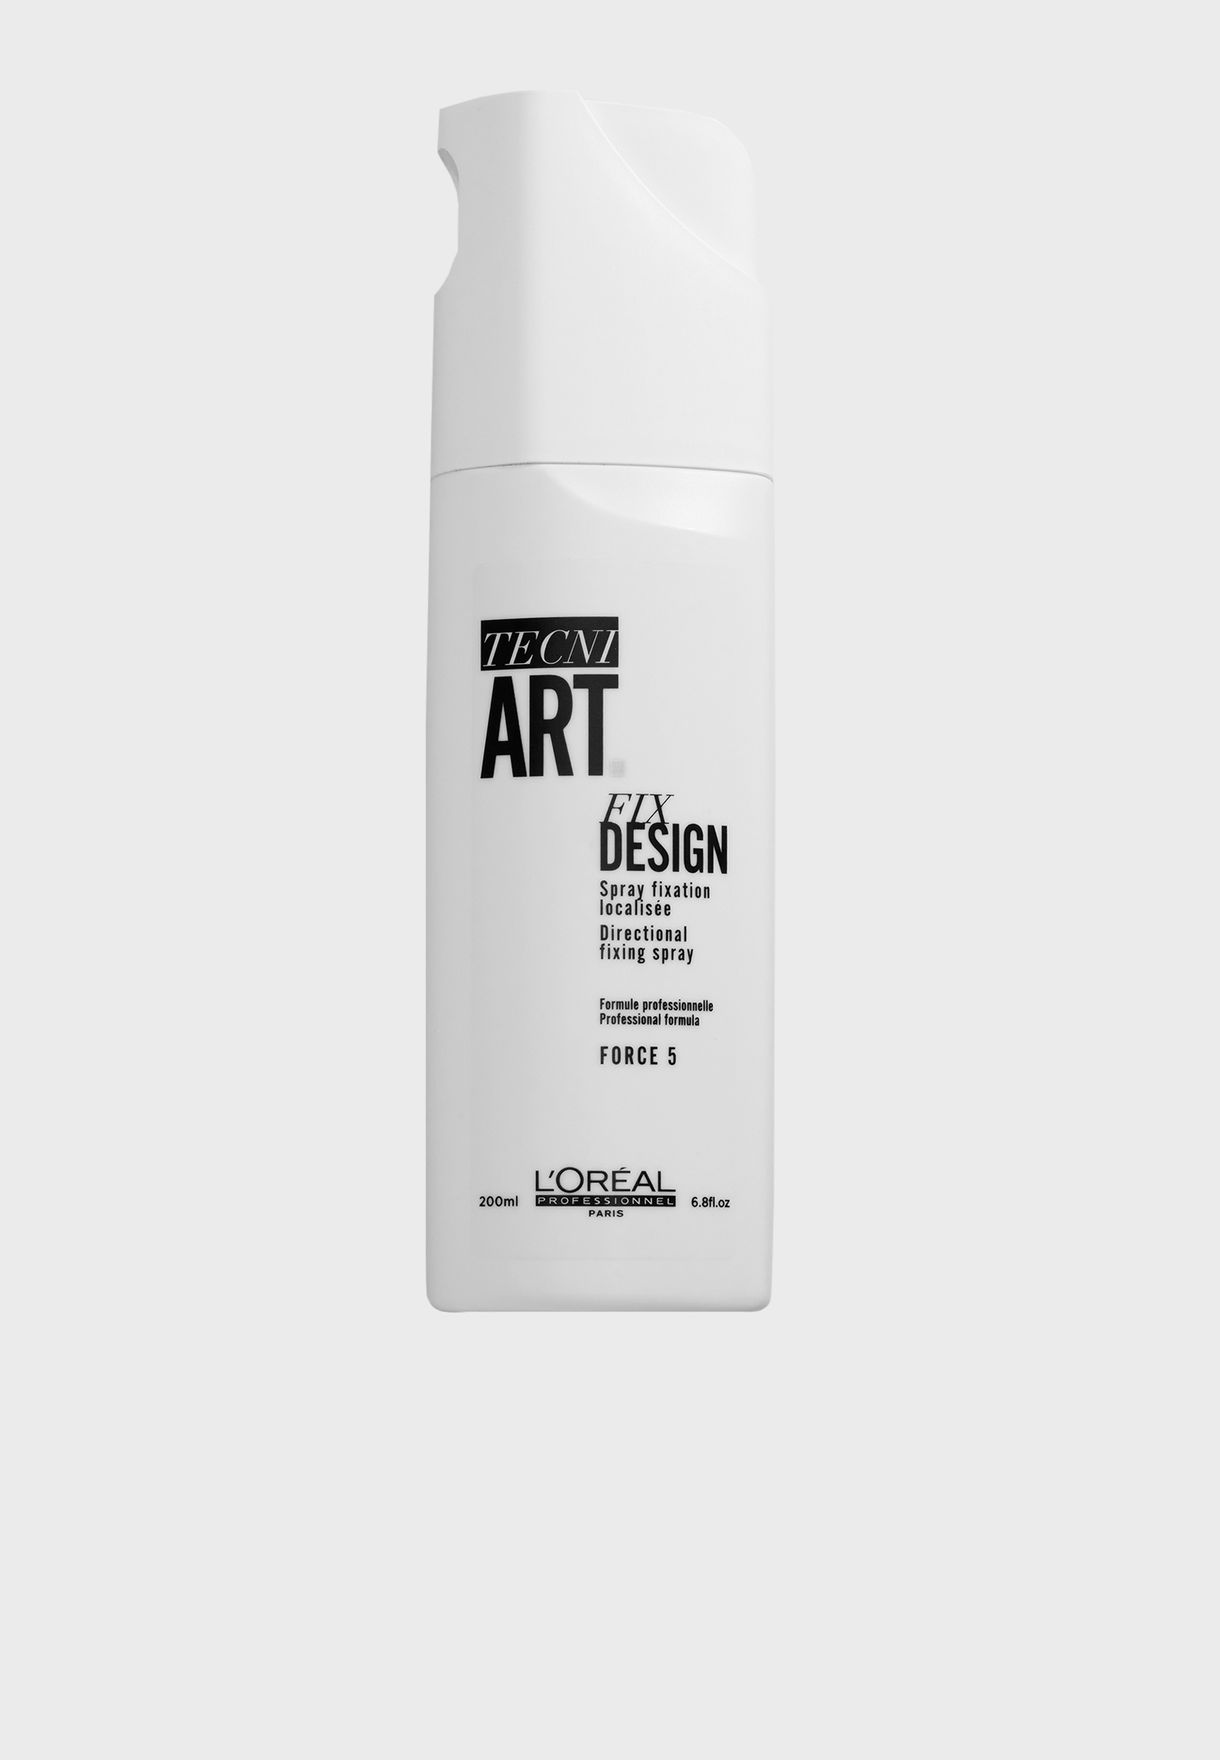 Tecni Art - Fix Design Spray